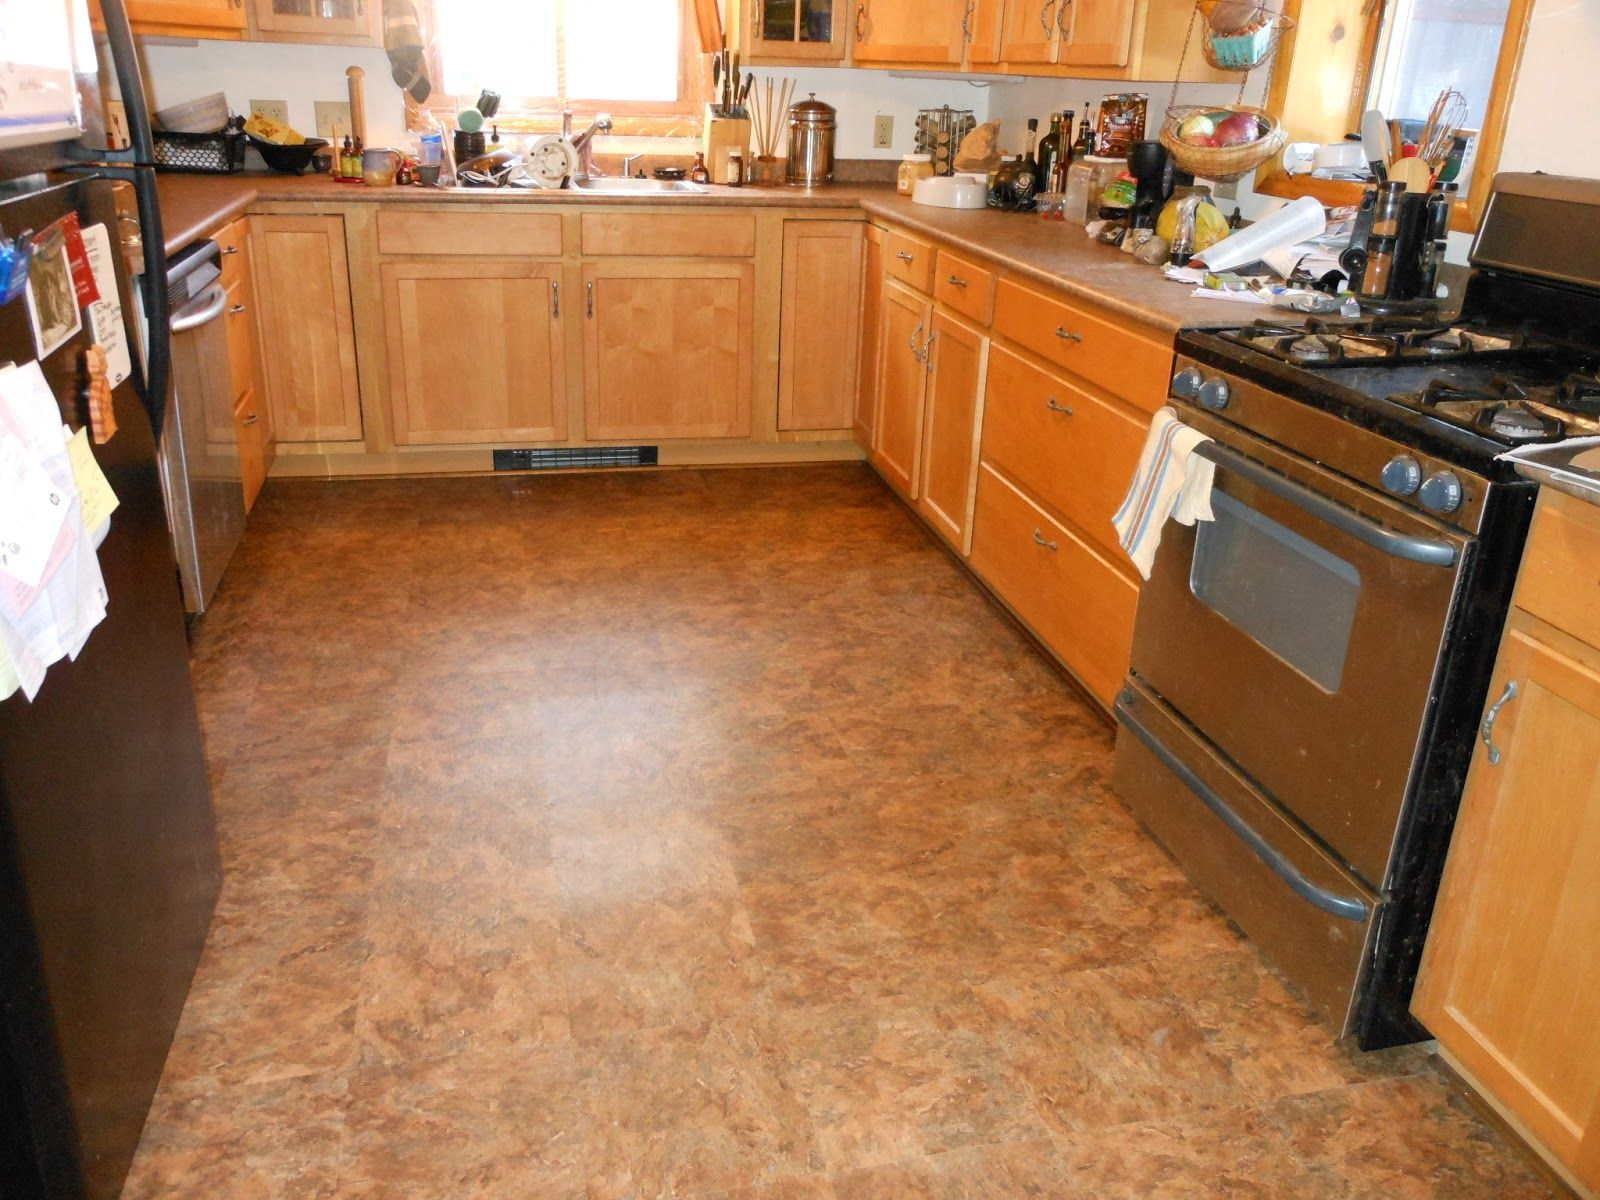 Kitchen floor tile designs for perfect warm have traba design ideas kitchen floor tile designs for perfect warm have traba design ideas flooring dailygadgetfo Images